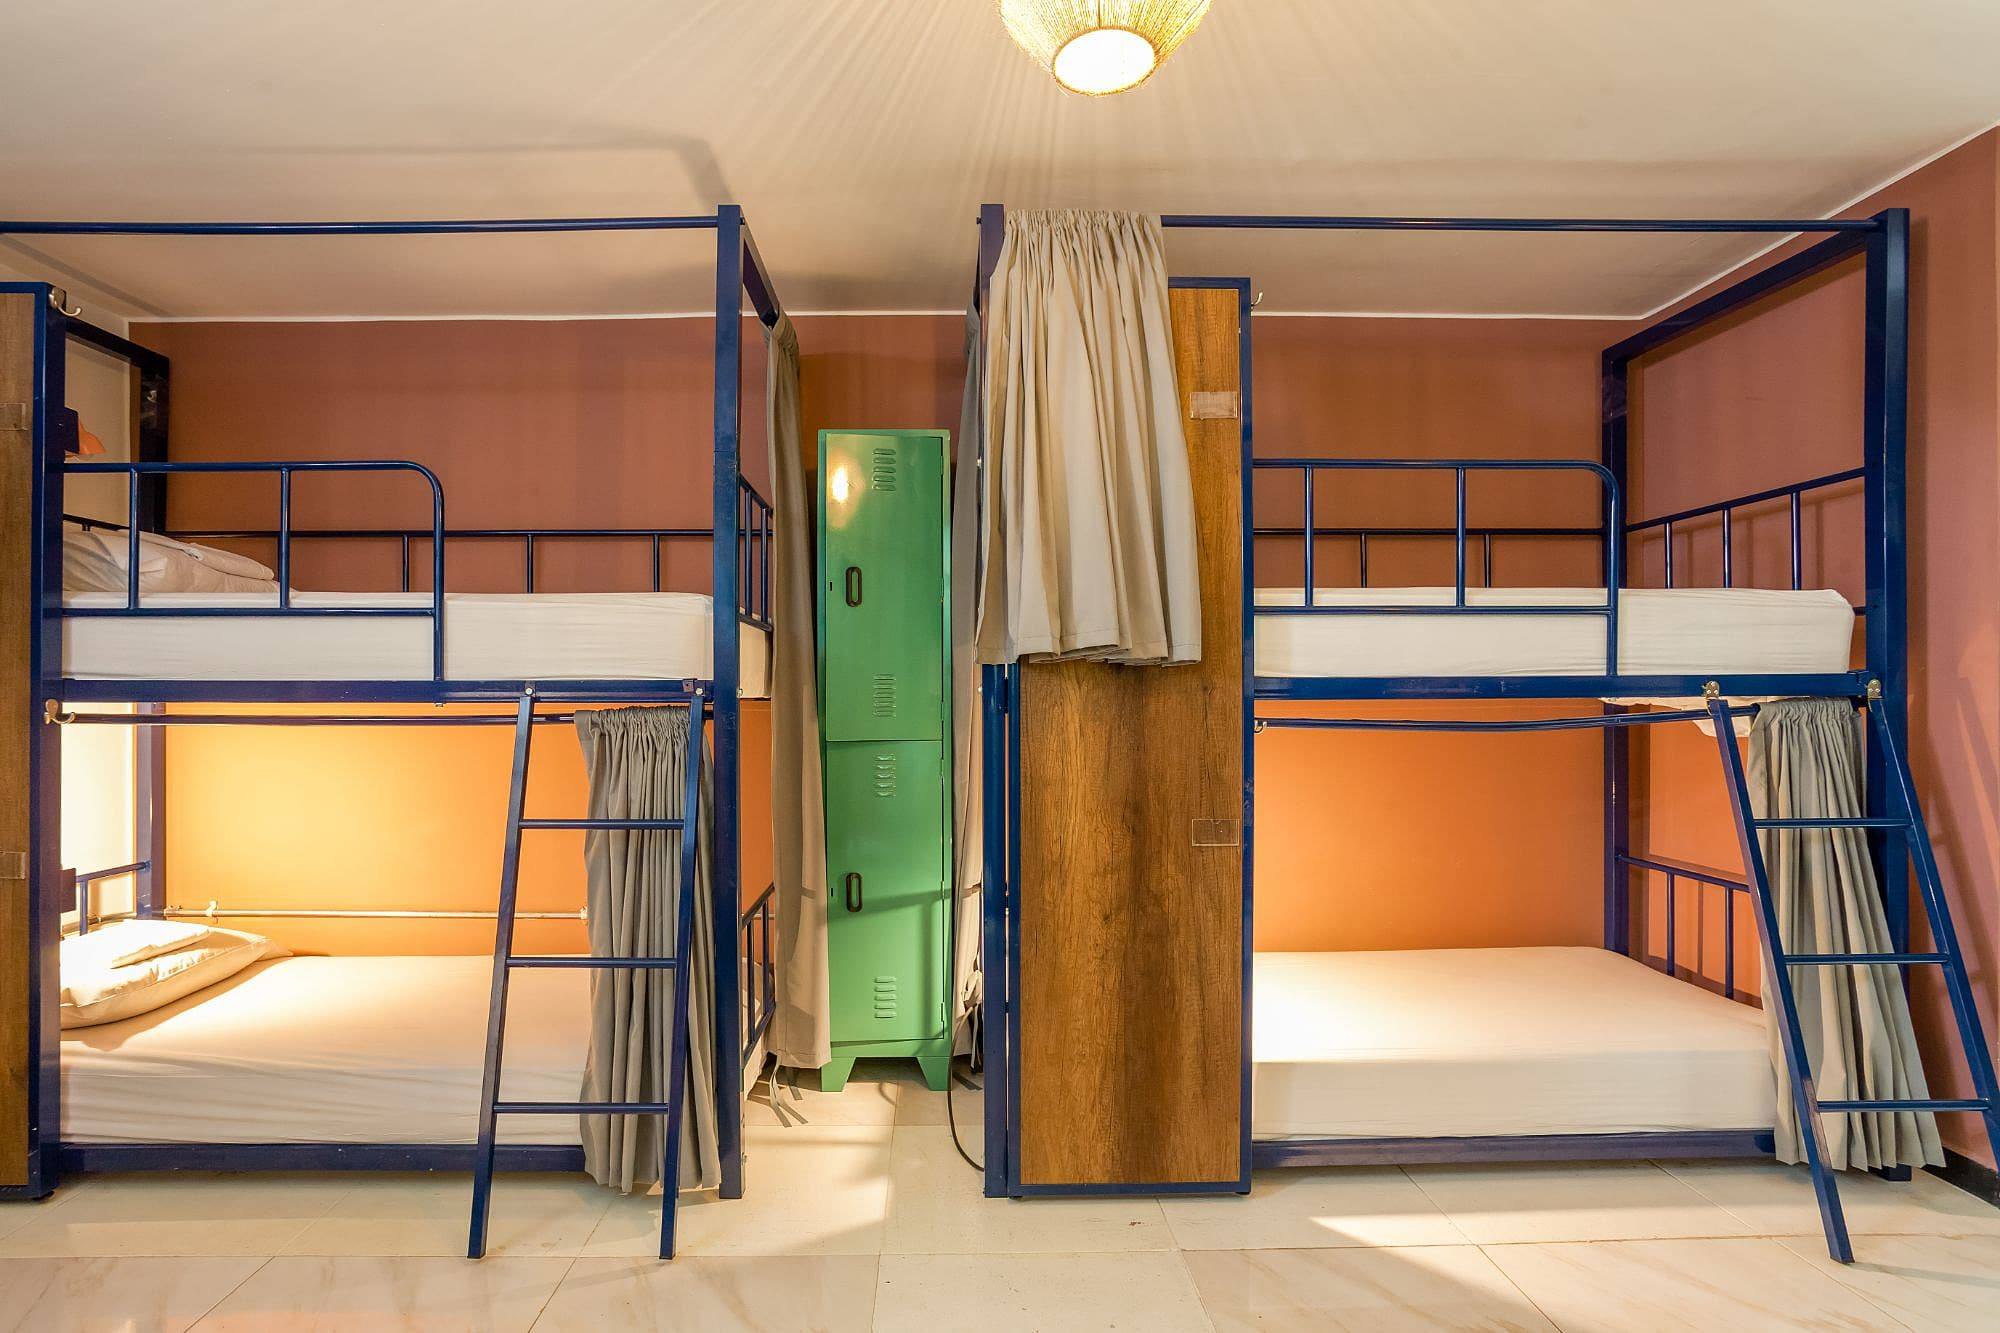 Picture of: Selina Cartagena Hostel The Best Way To Explore Cartagena